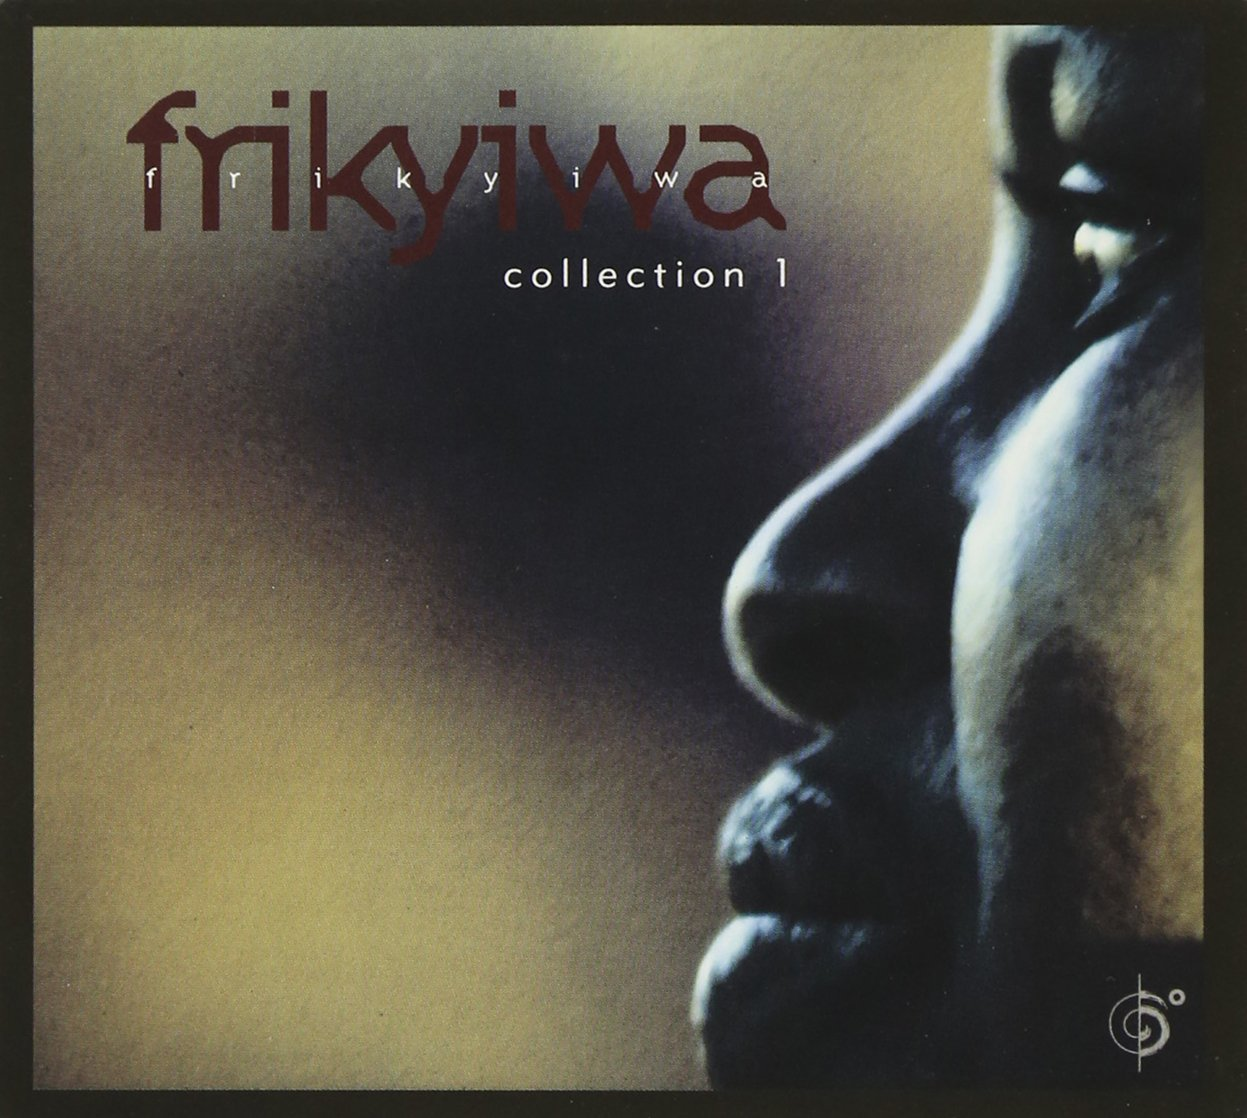 Frikyiwa Collection 1